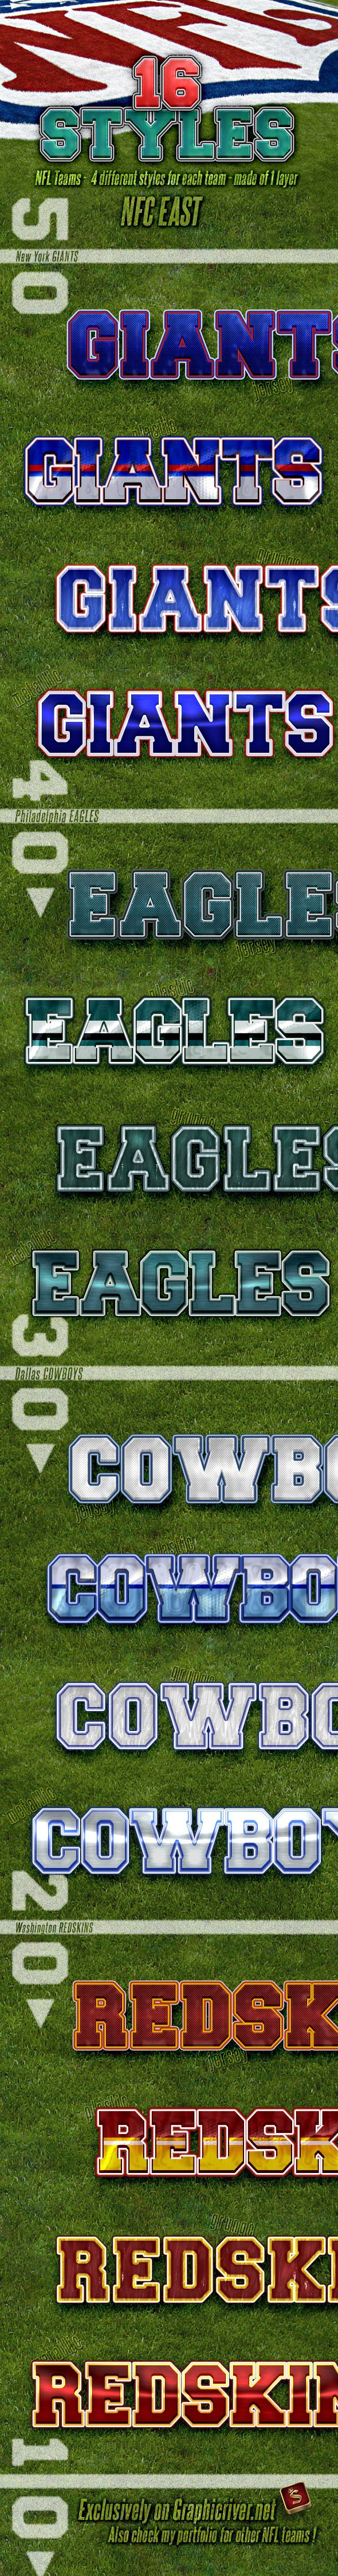 NFL Football Styles NFC East — Layered PSD #philadelphia #team • Available here → https://graphicriver.net/item/nfl-football-styles-nfc-east/4730354?ref=pxcr